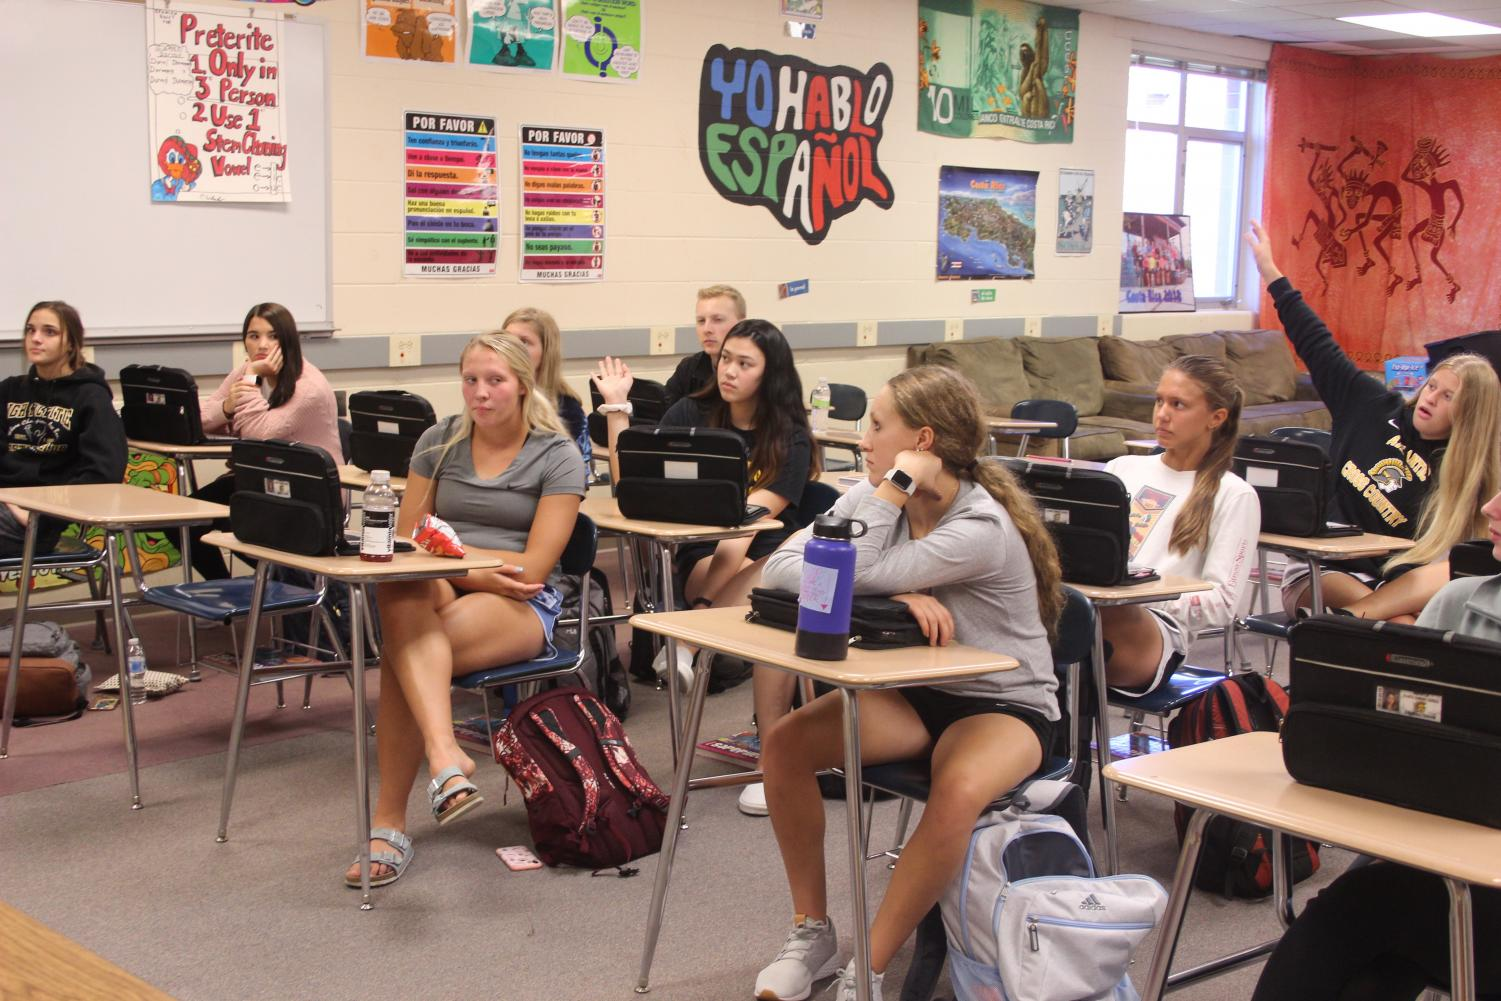 A mix of upperclassmen and underclassmen, the students in the new leadership class talk about their